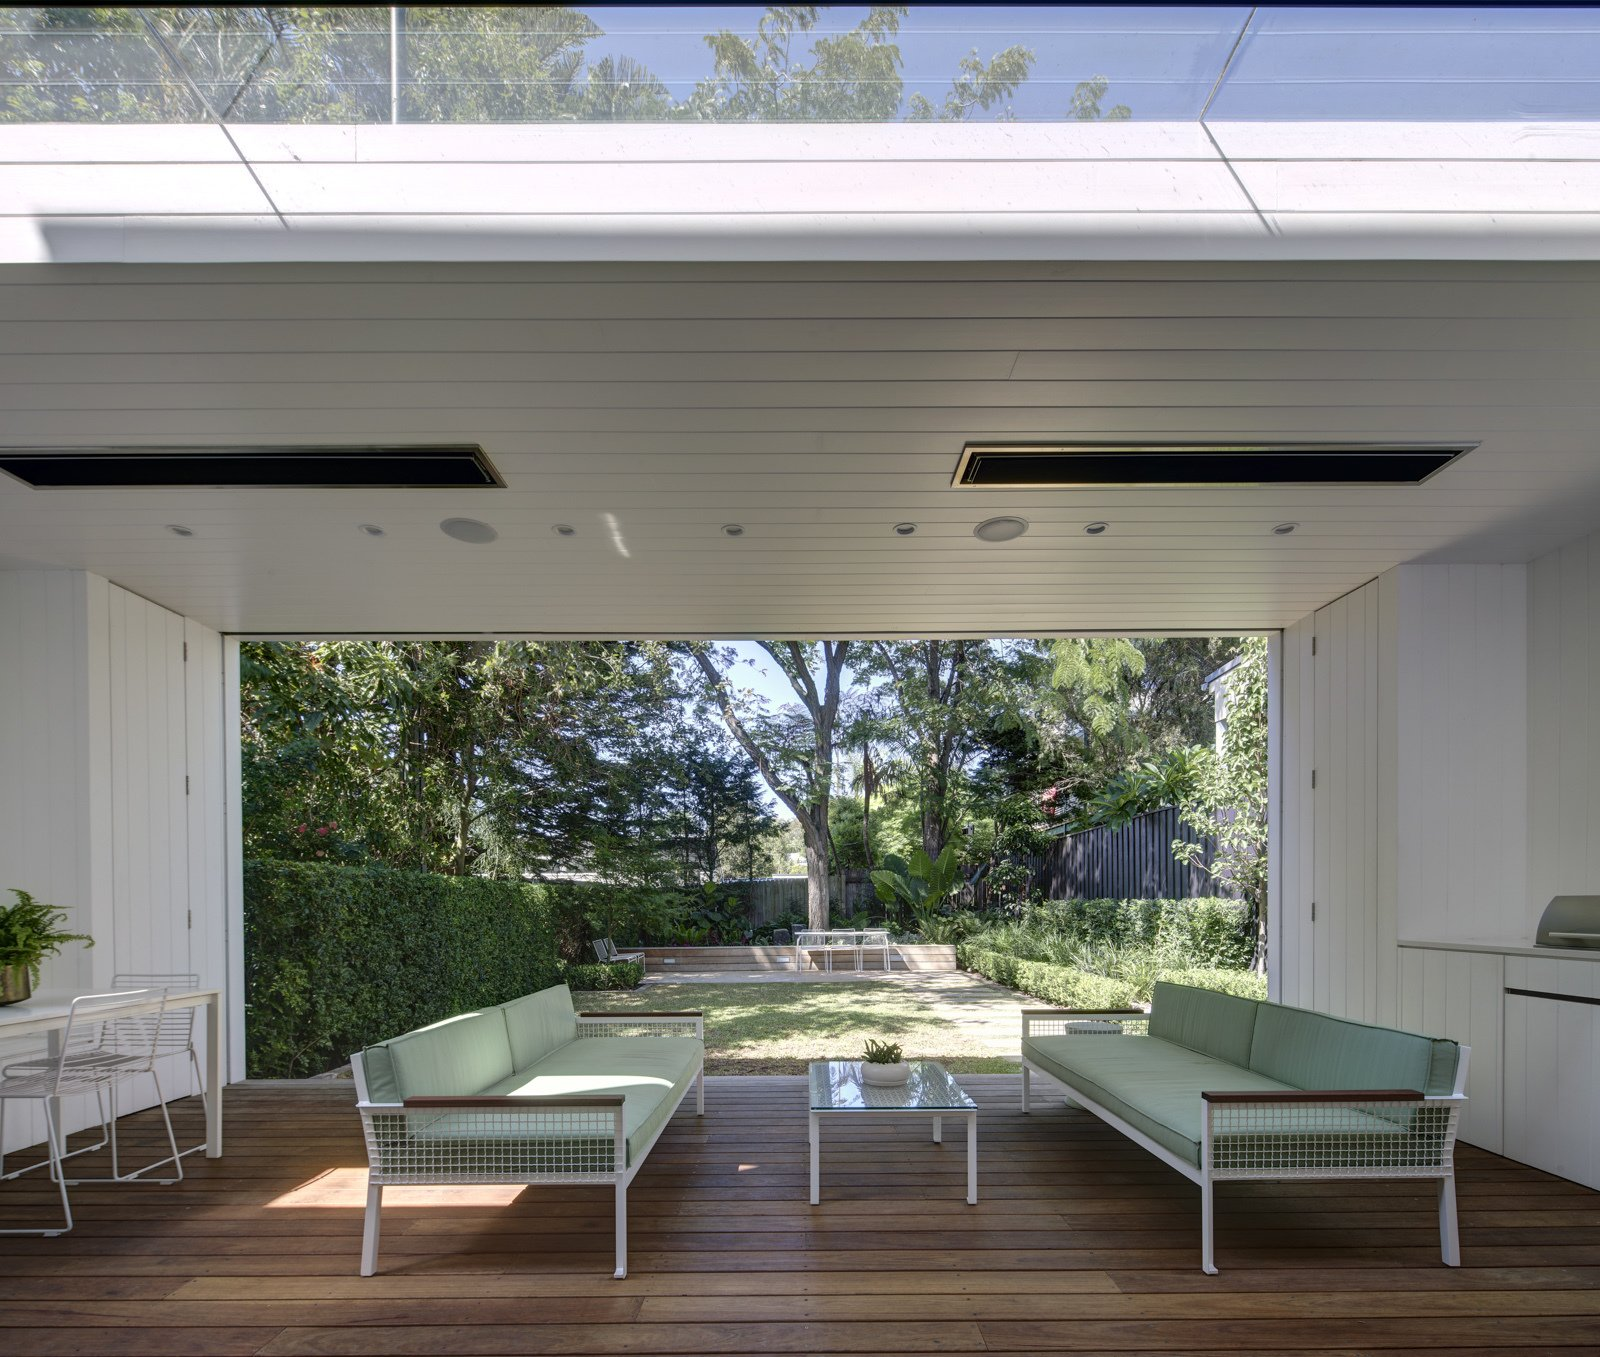 The garden room frames the landscape and becomes an extension of the interior spaces. White painted lining boards wrap the space and echo the traditional palette of the cottage.  Inner West House by Andrew Burns